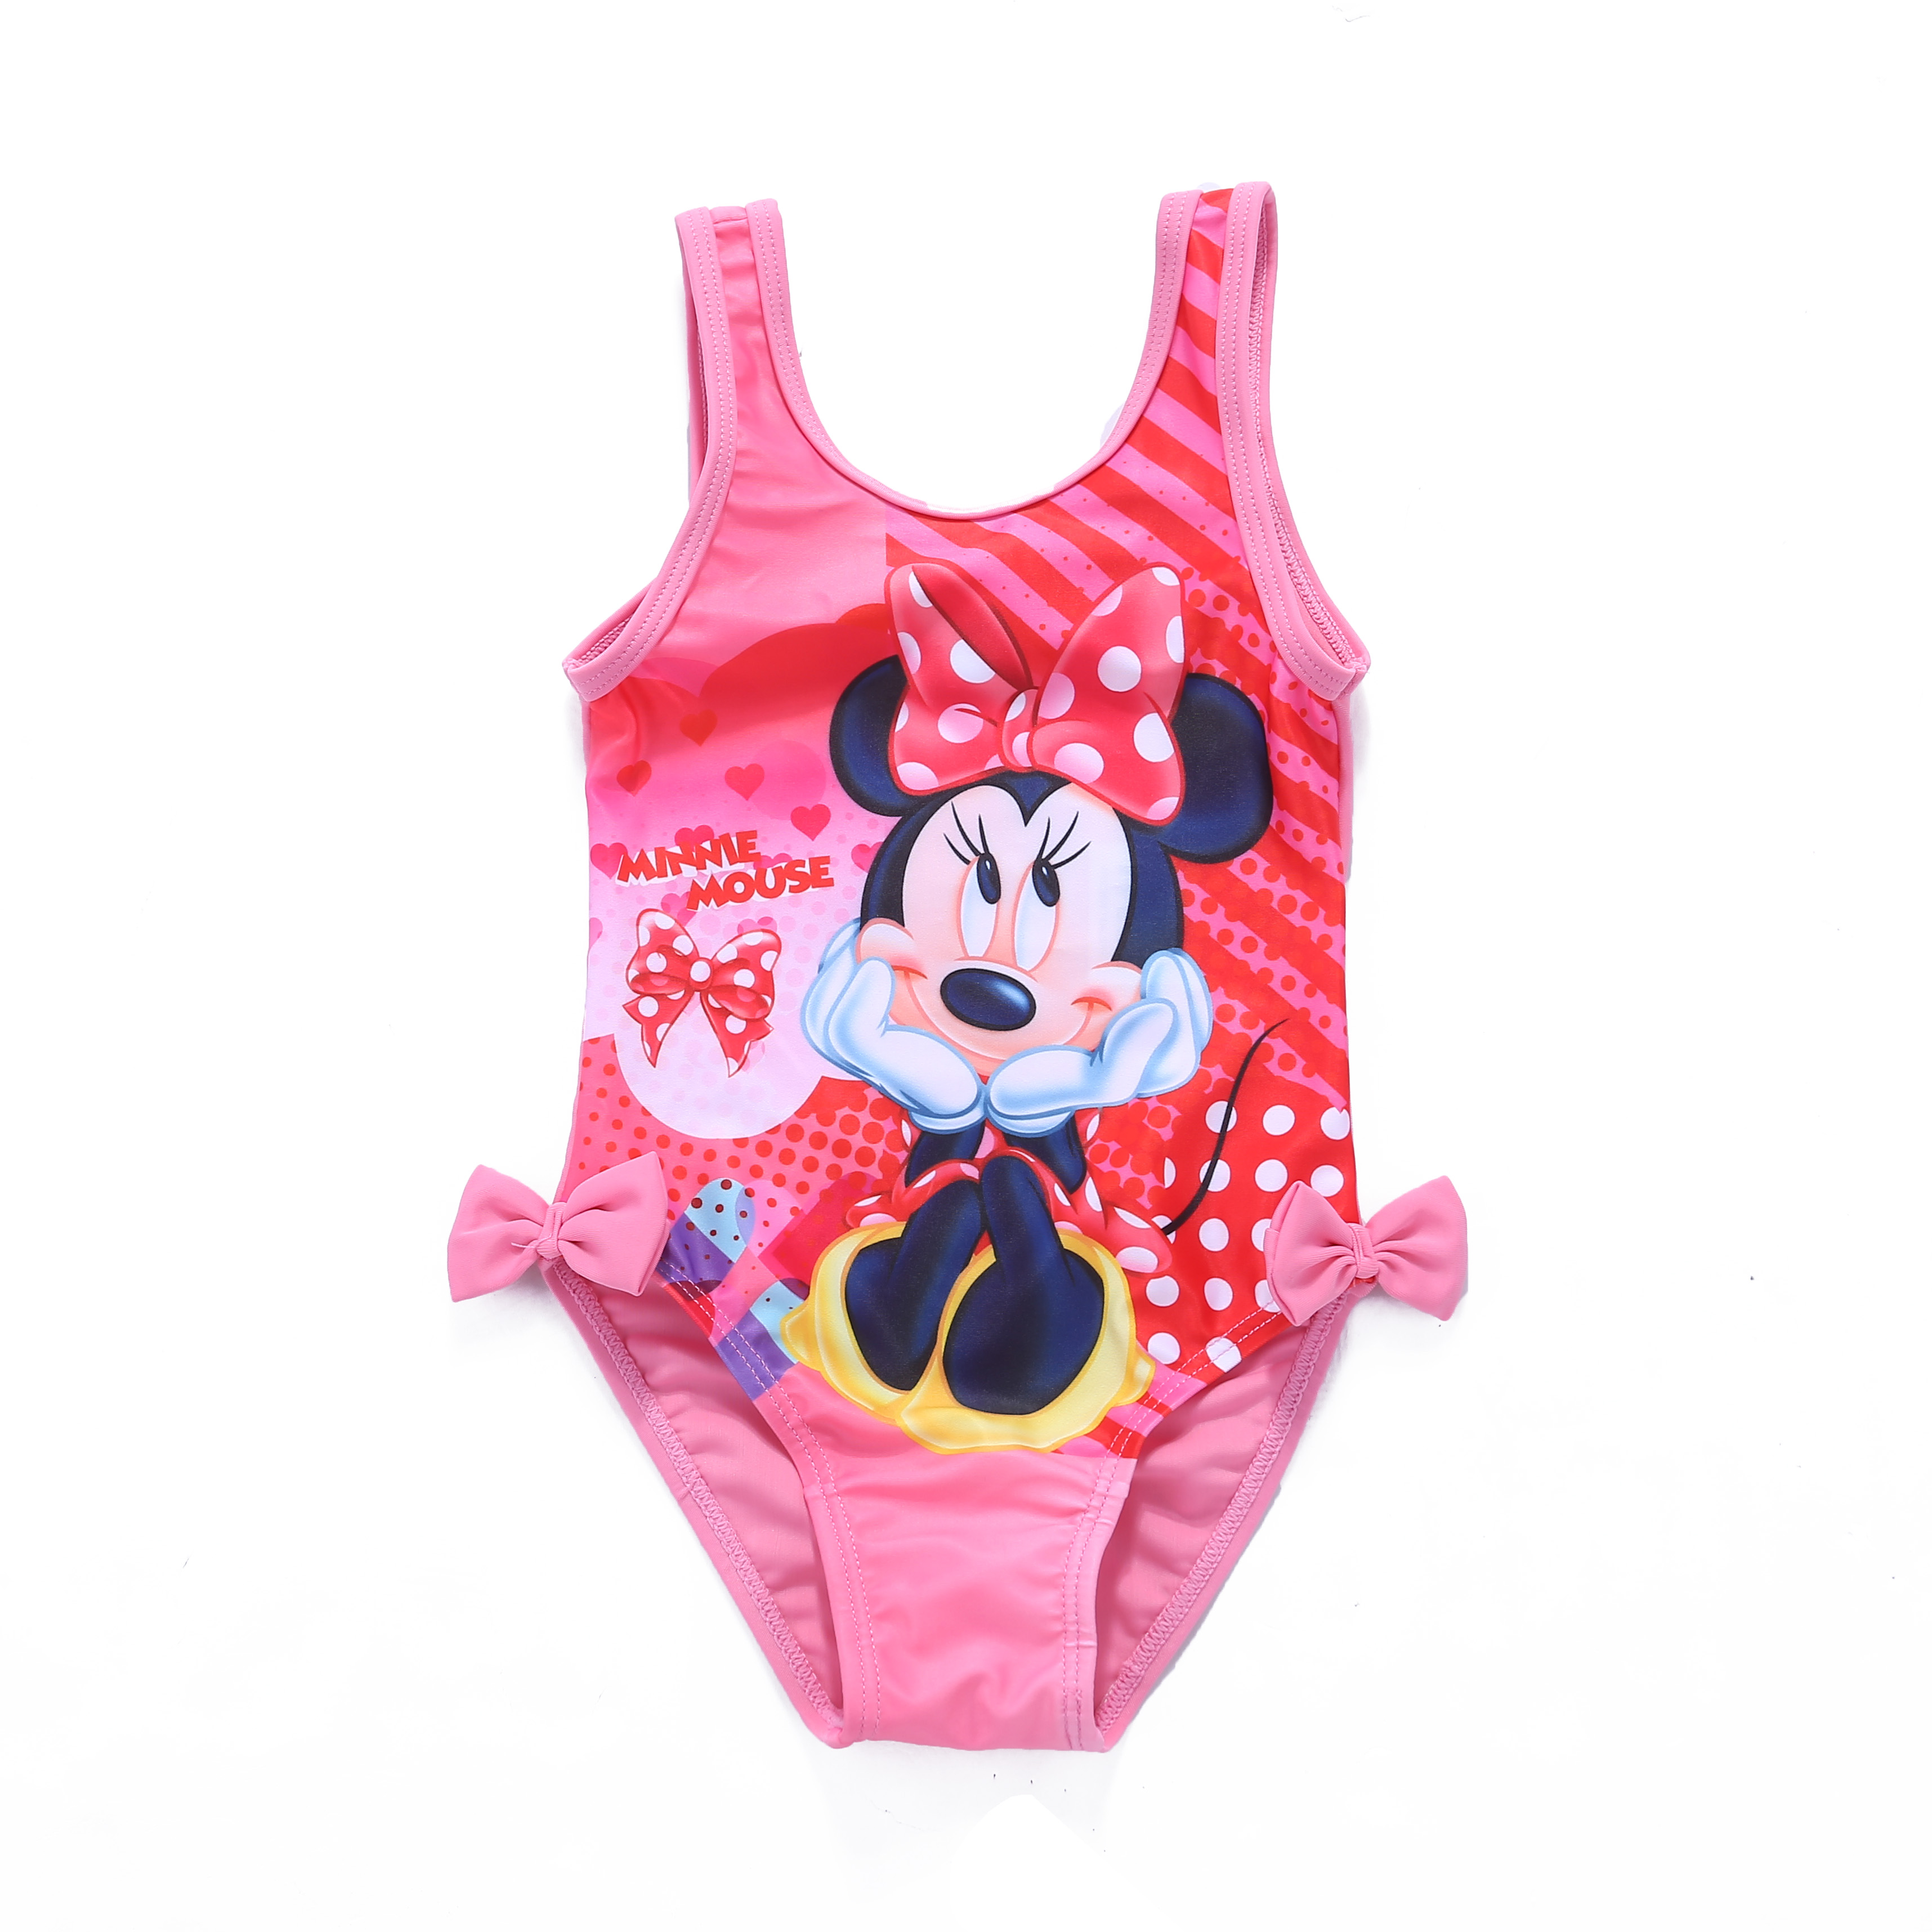 cef0616d6 Baby Girls' Disney Minnie Mouse One Piece Swimwear With Bowknot At  Sides__WH-GSW004